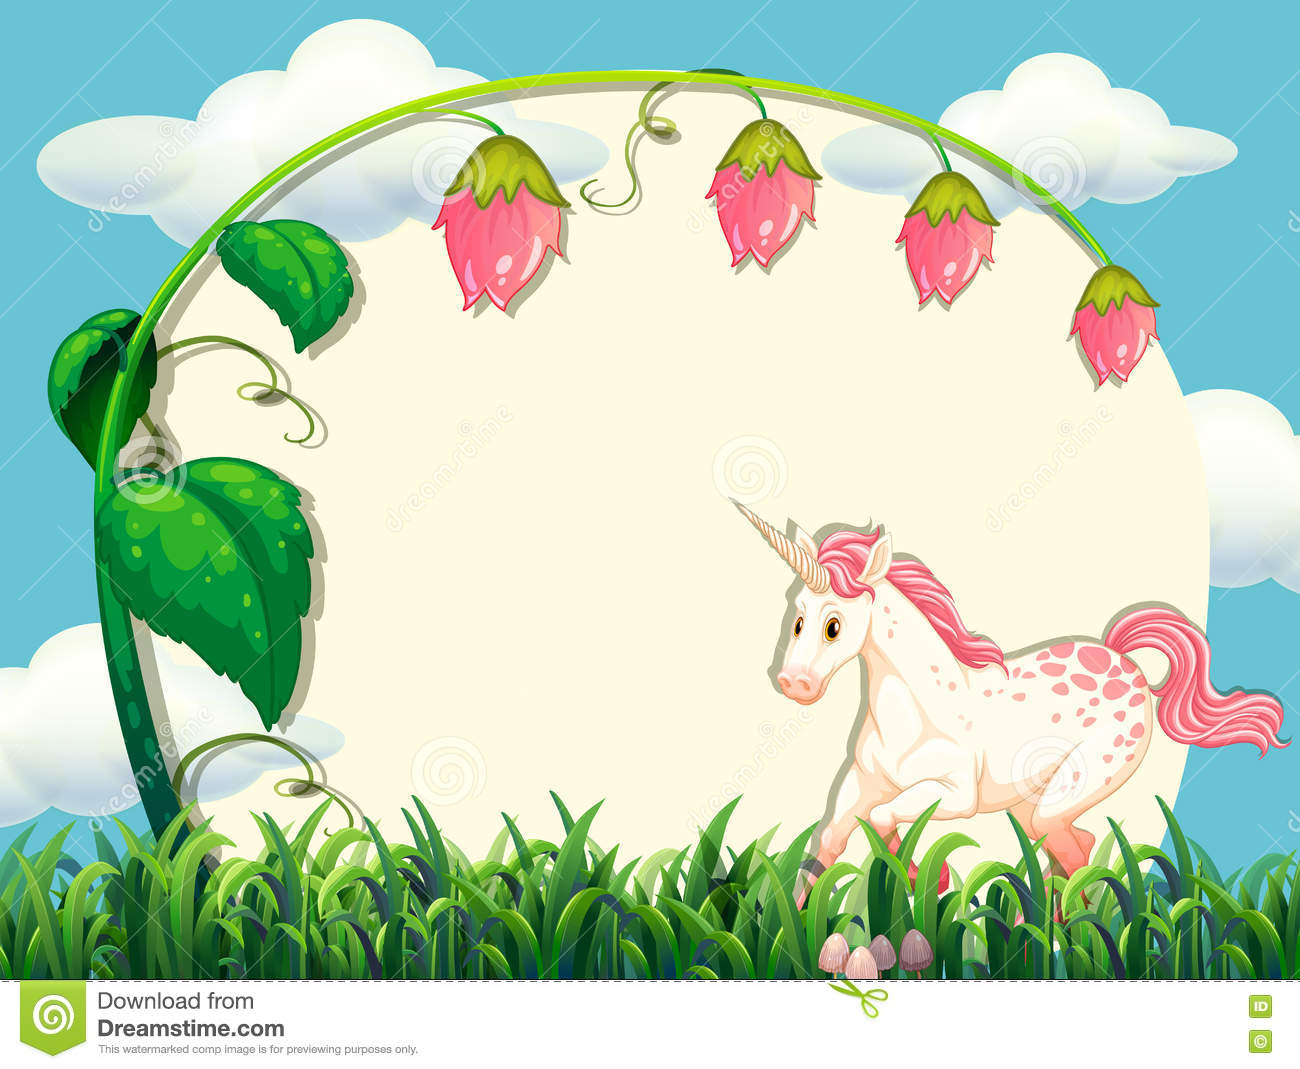 Frame Design With Flower And Unicorn